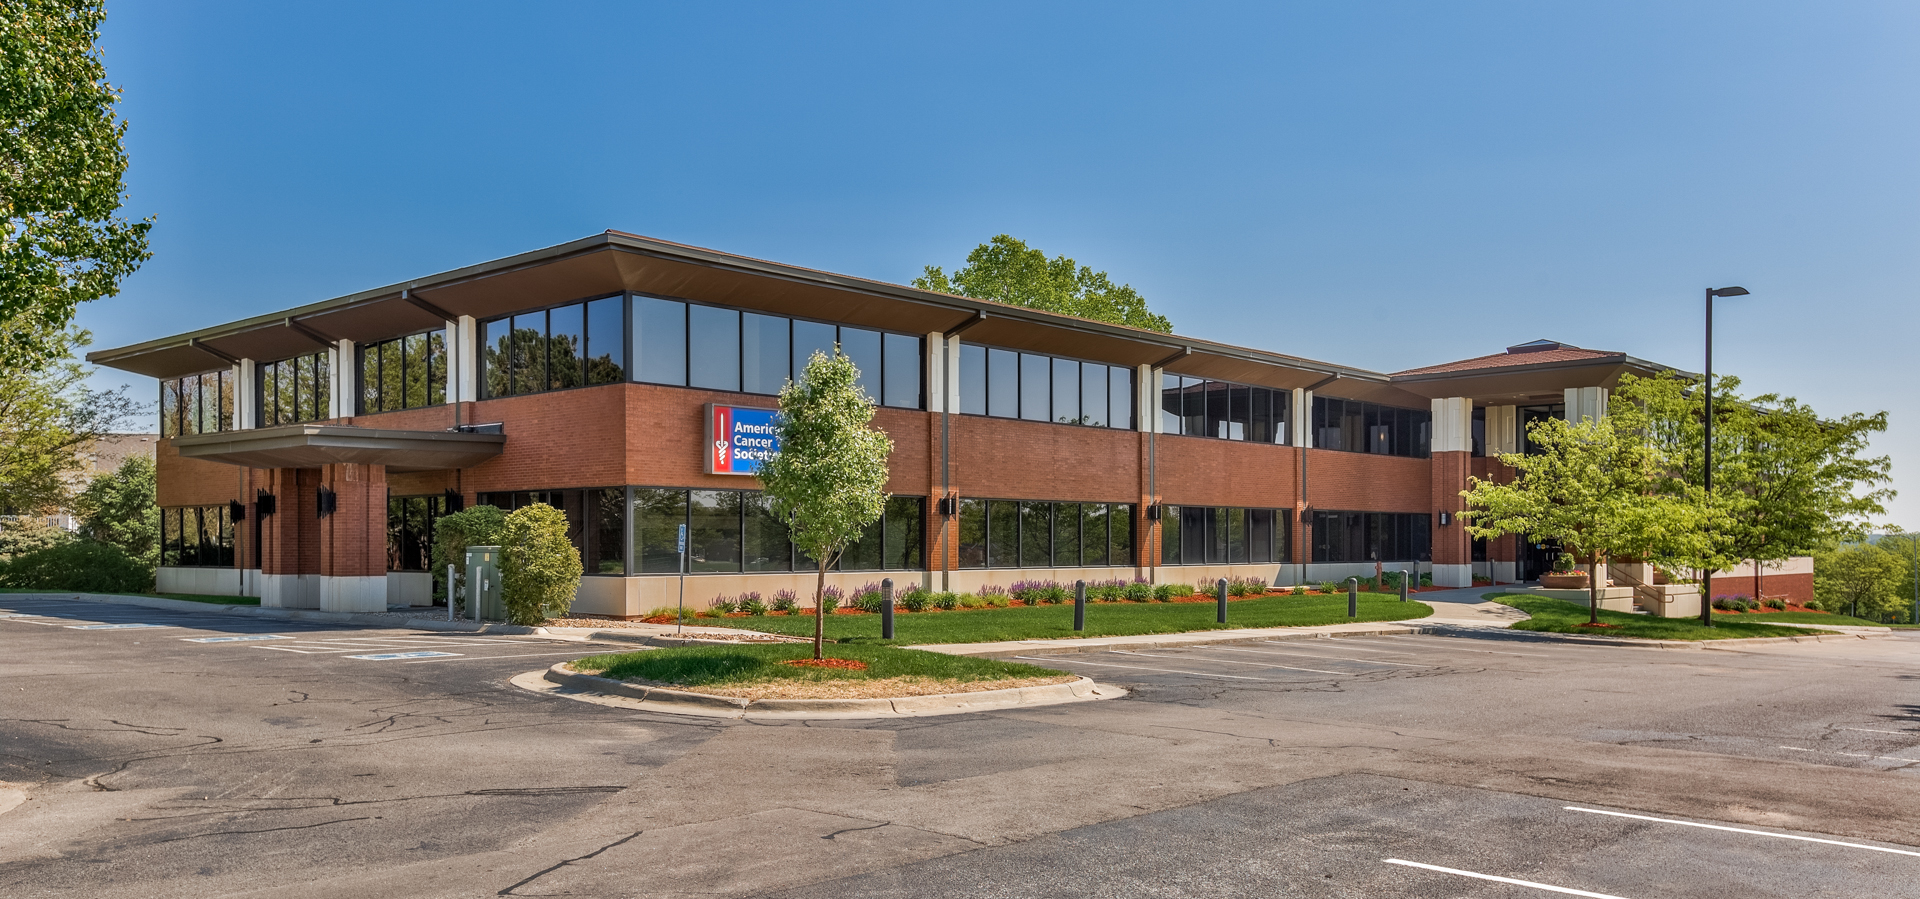 9850 Nicholas Street - SUITE 300: Approximately 1,620 RSF available. Hard to find small space in a Class A building at prime location. Space overlooks Westroads mall. Layout is mostly open with two back offices, could easily configure more offices. $15.95/ft NNN. Click here for Data Sheet